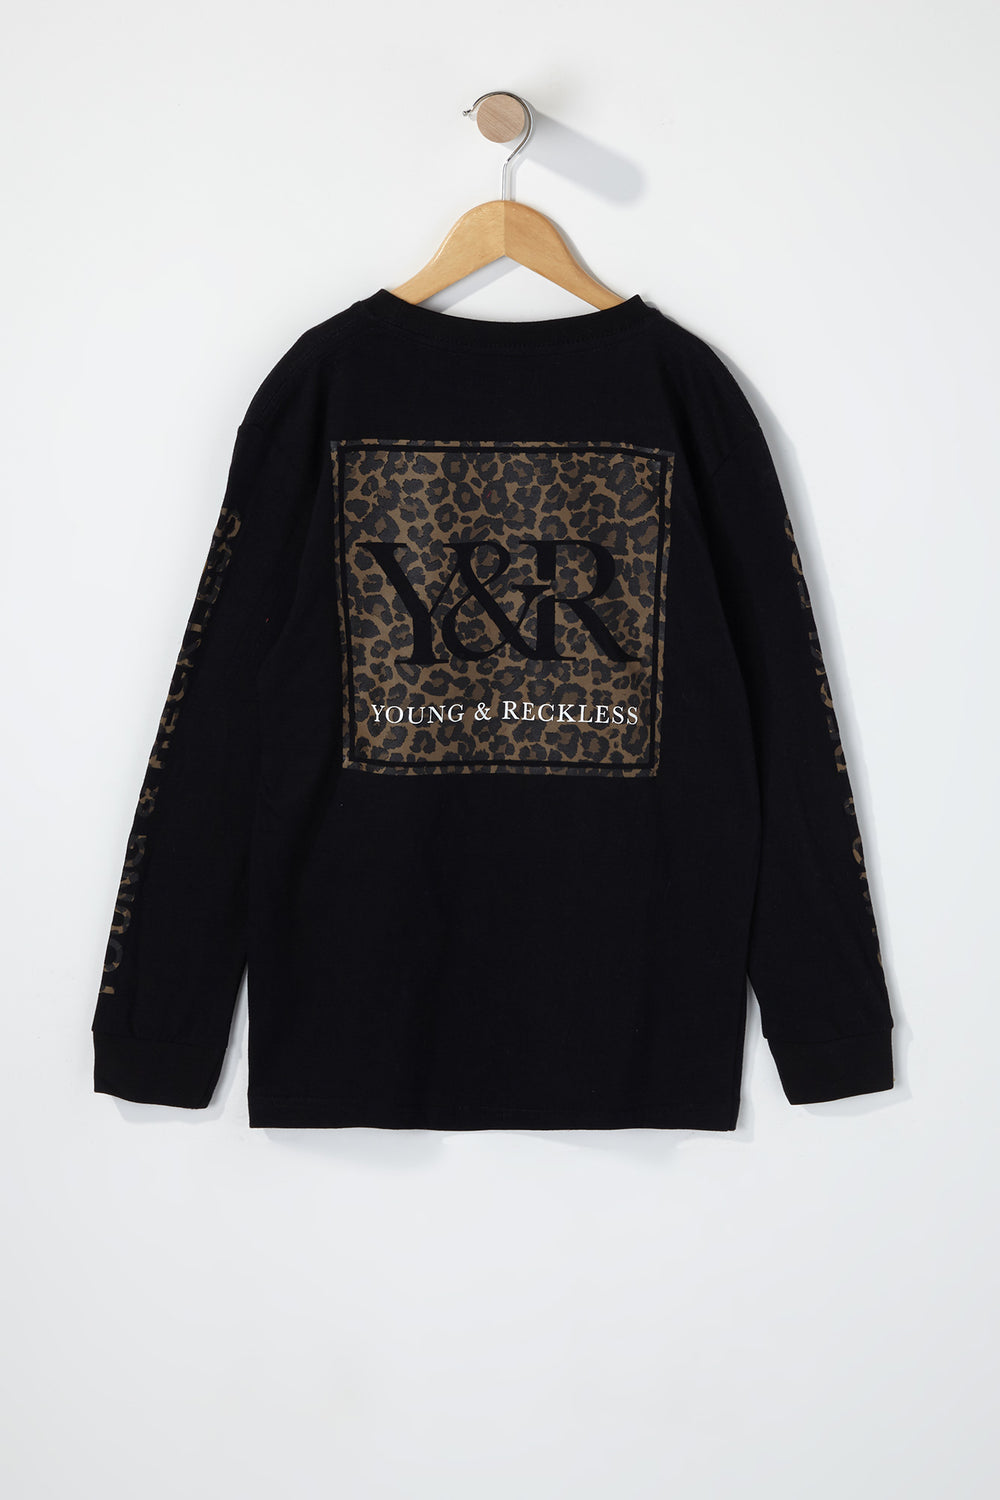 Young & Reckless Boys Leopard Print Logo Long Sleeve Shirt Black